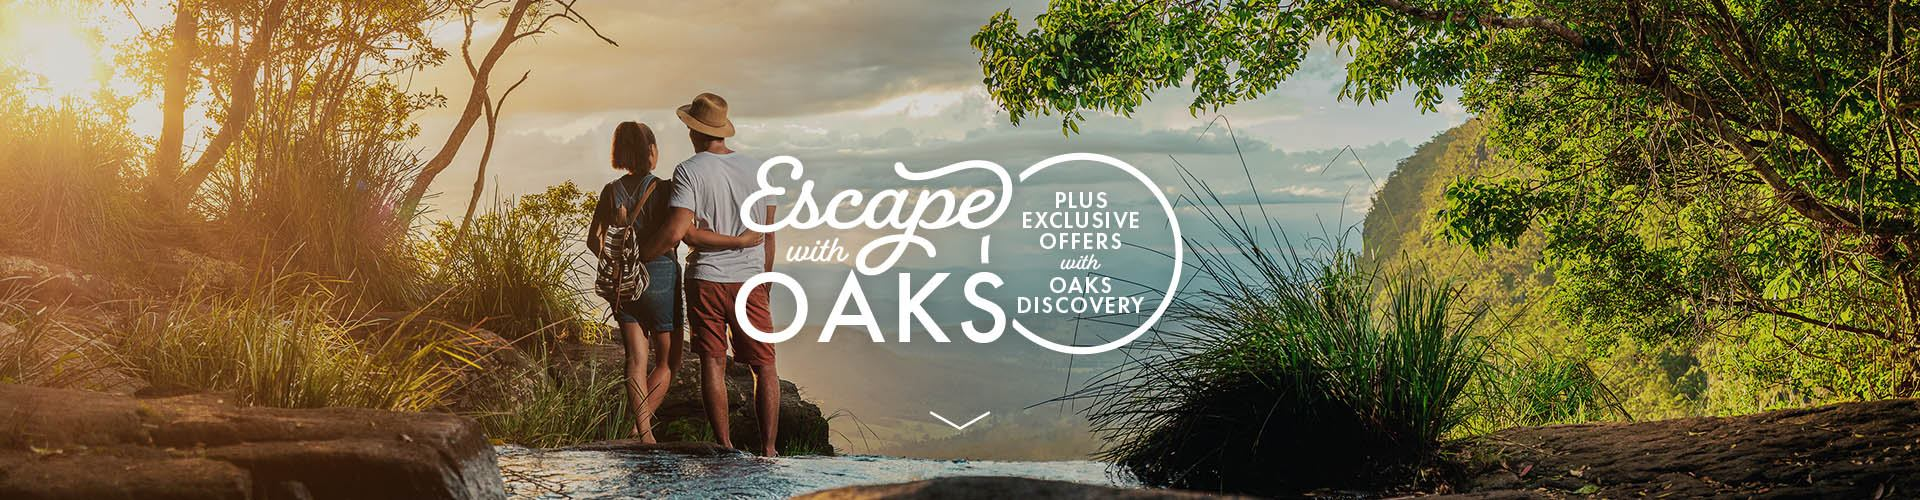 Escape with Oaks Hotels, Resorts and Suites to over 55 locations across Australia and New Zealand